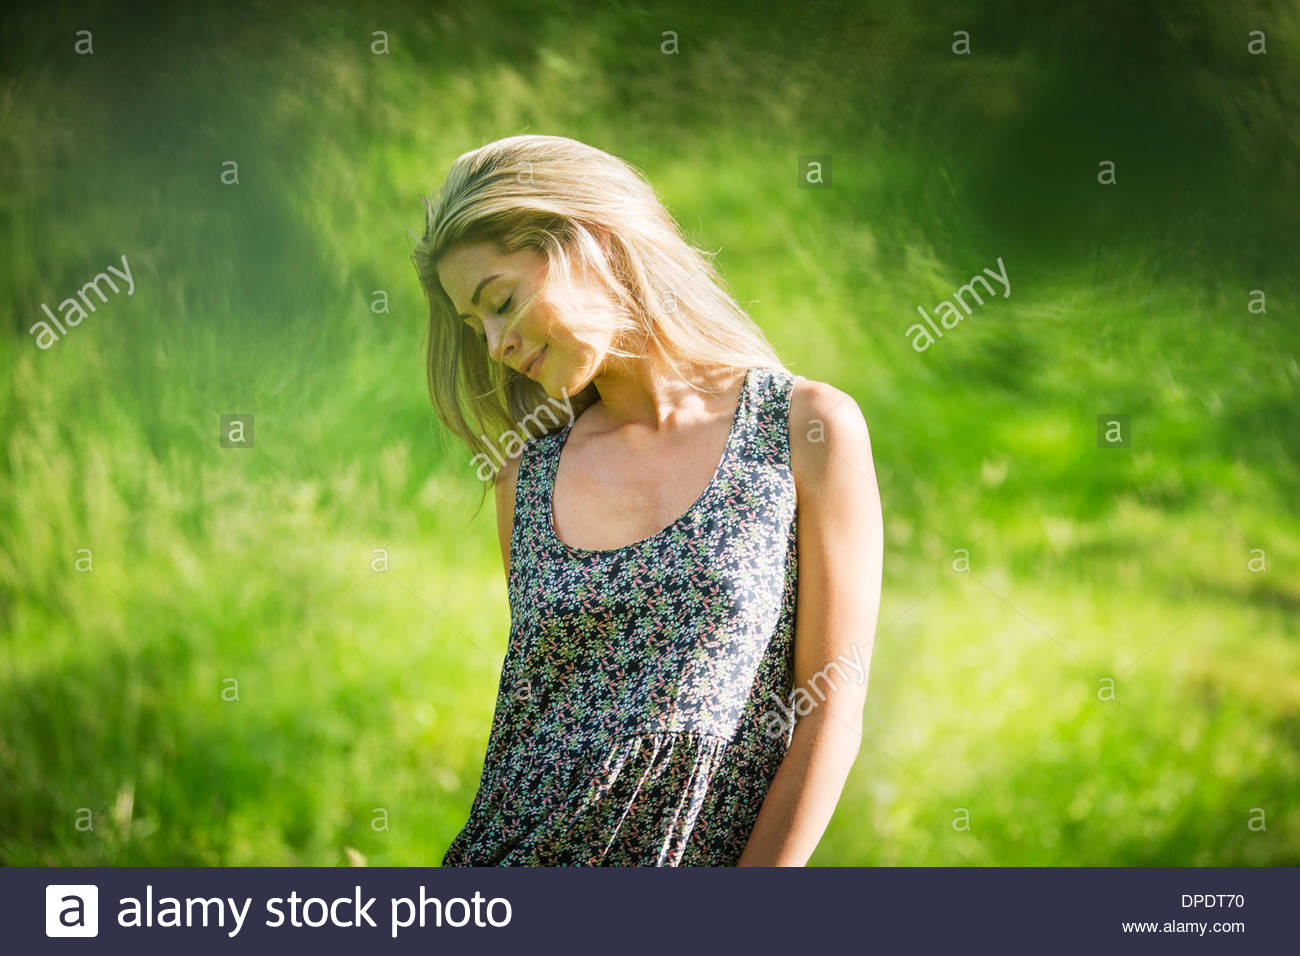 Young woman wearing sundress - Stock Image